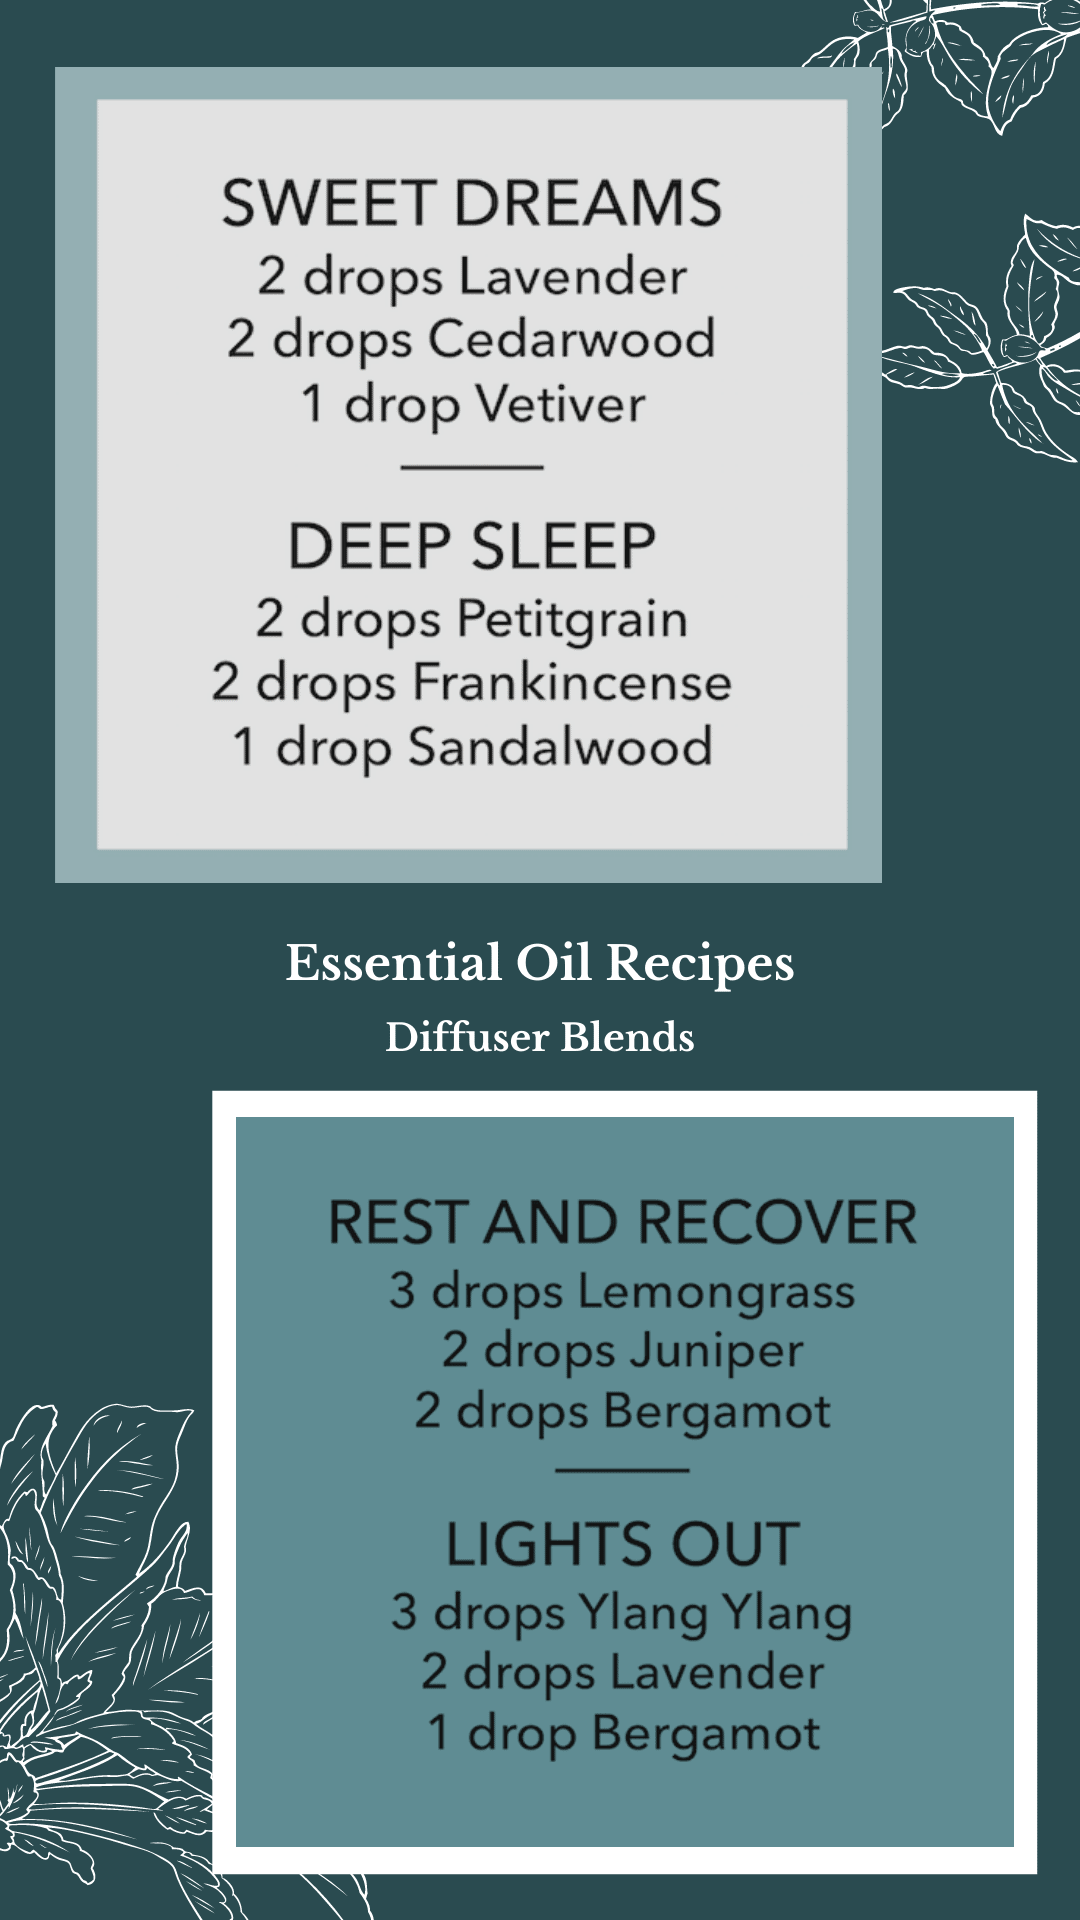 Essential Oil Diffuser Blend Recipes To Help With Sleep or Insomnia